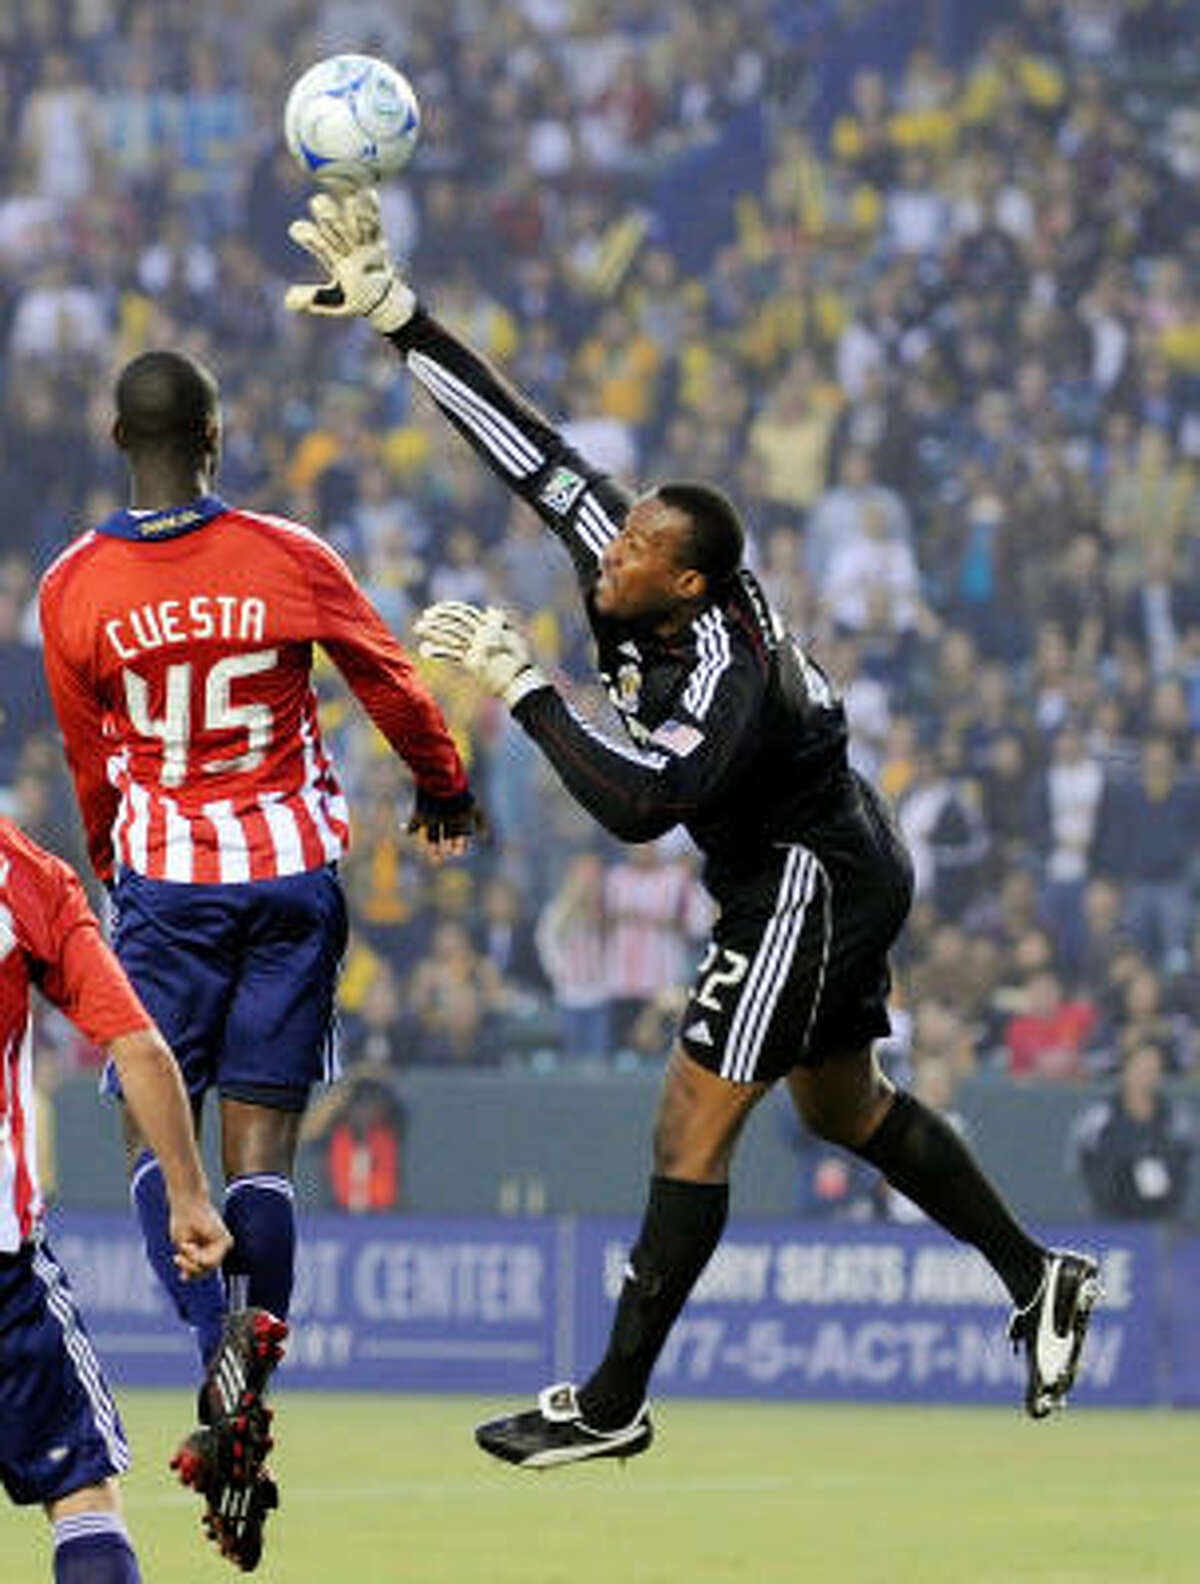 Goalkeeper Zach Thornton, Chivas USA The 14-year MLS veteran was voted the 2009 Goalkeeper of the Year and Comeback Player of the Year after leading all goalkeepers with 0.87 goals against average and 12 shutouts, and leading Chivas USA to a fourth consecutive playoff appearance.